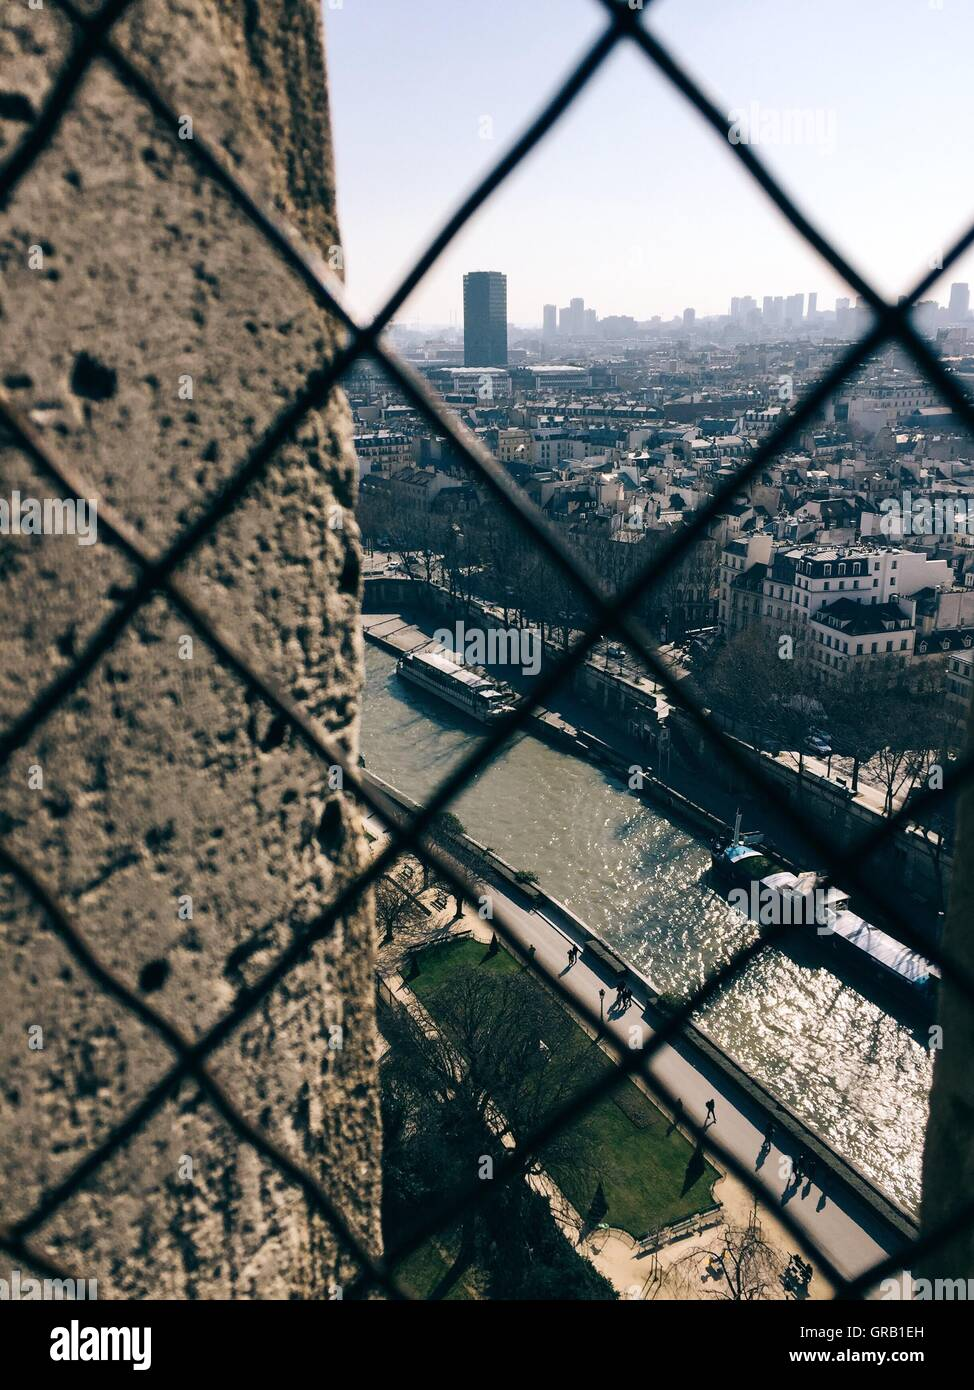 Seine River Amidst Cityscape Against Sky Seen Through Chainlink Fence - Stock Image